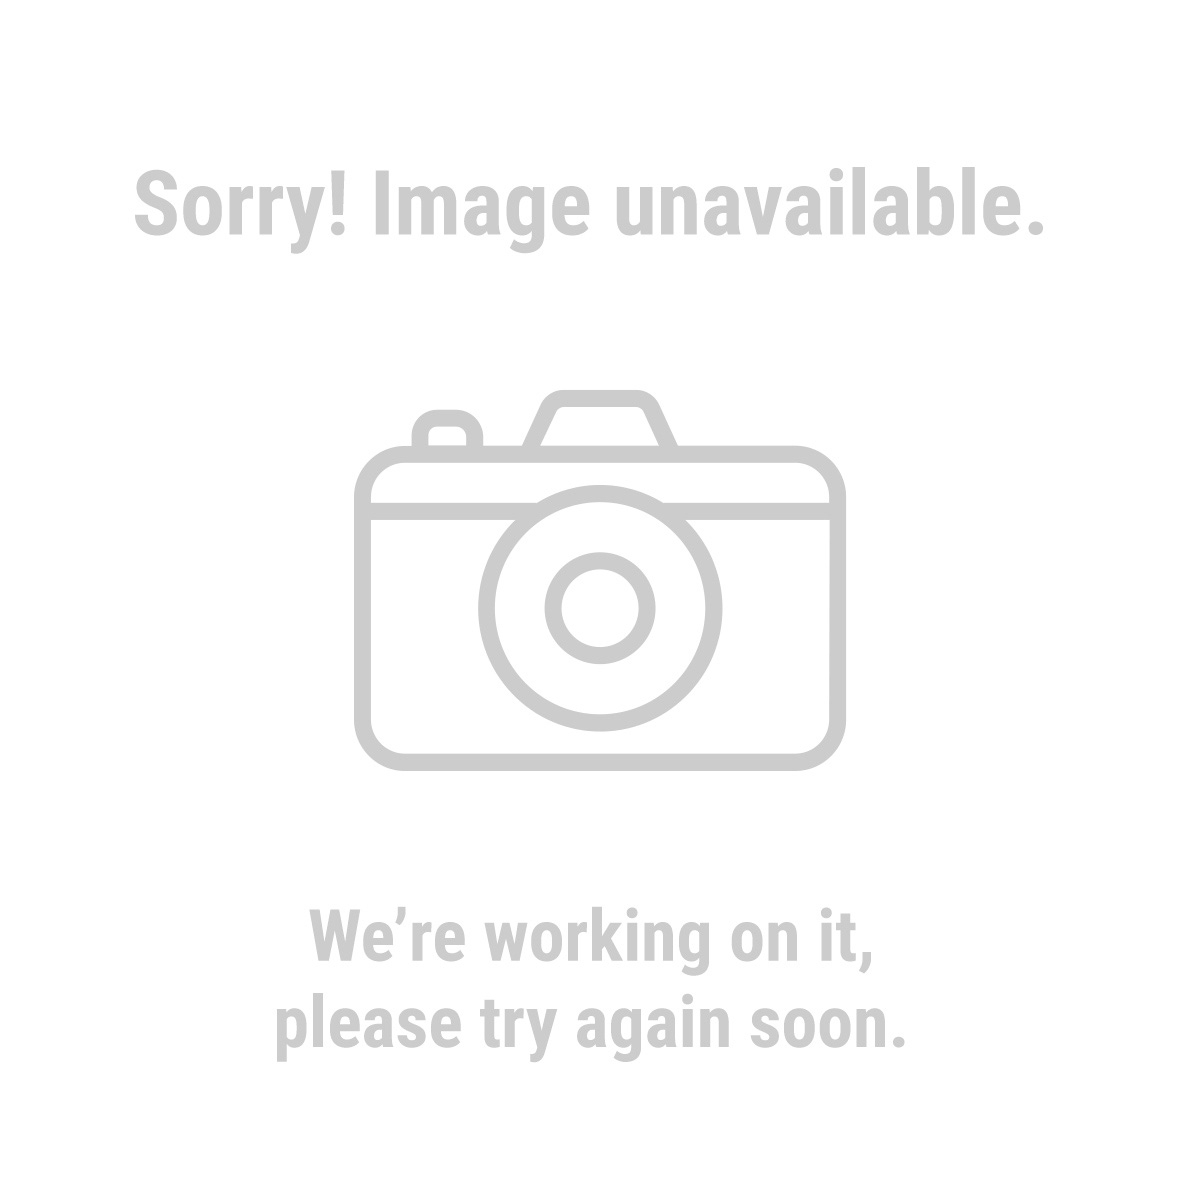 Central Pneumatic 62250 50 ft. x 3/8 in. Heavy Duty Premium Rubber Air Hose